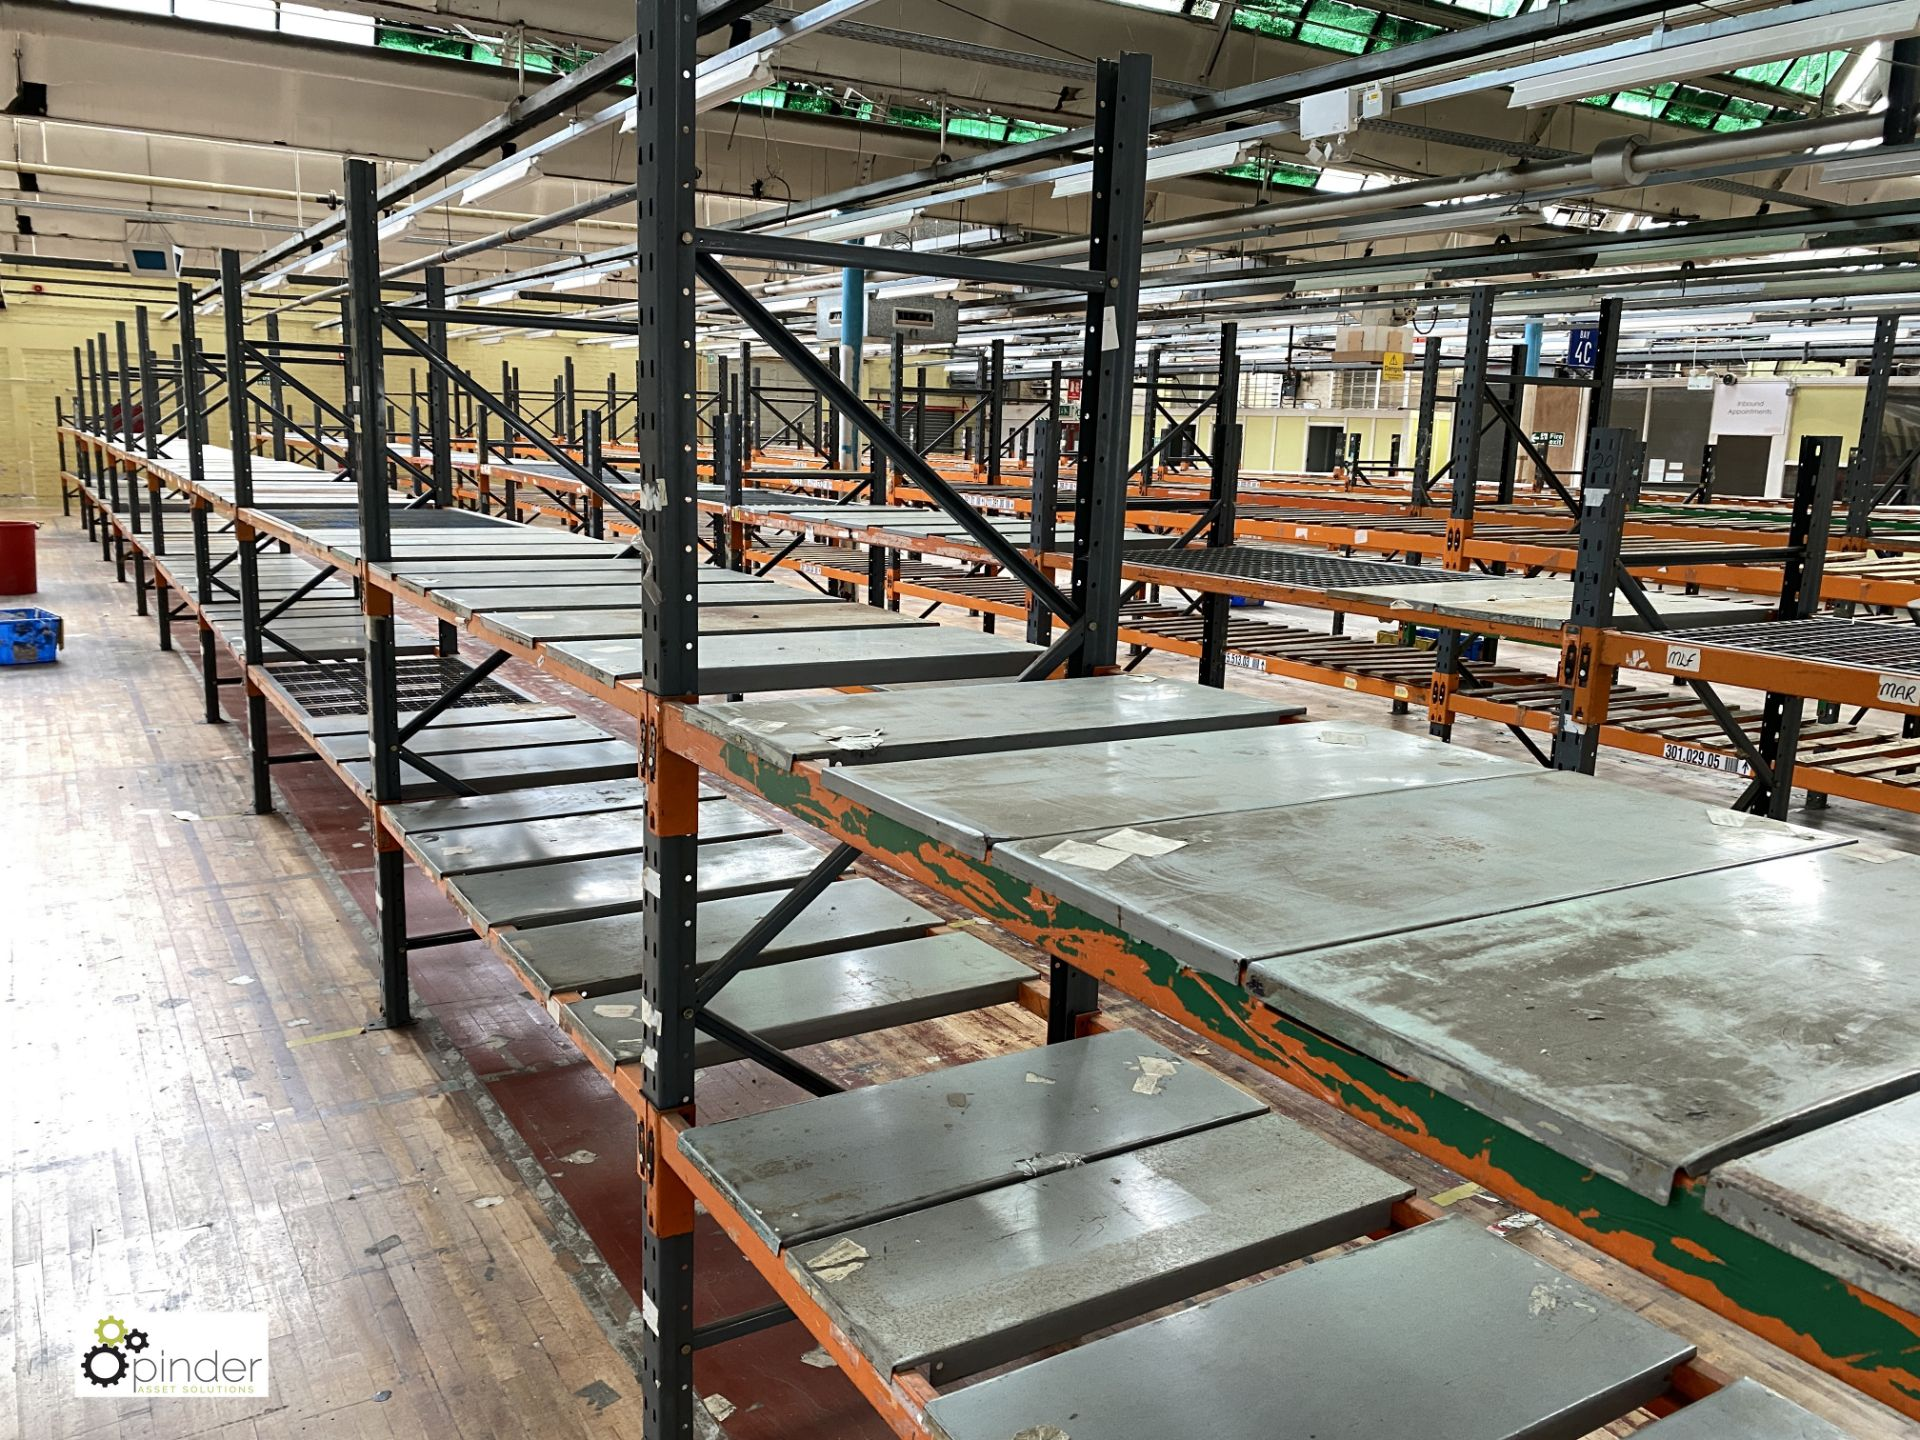 11 bays Dexion Speedlock boltless Racking, comprising 9 uprights 2440mm x 910mm, 3 uprights 1835mm x - Image 2 of 5